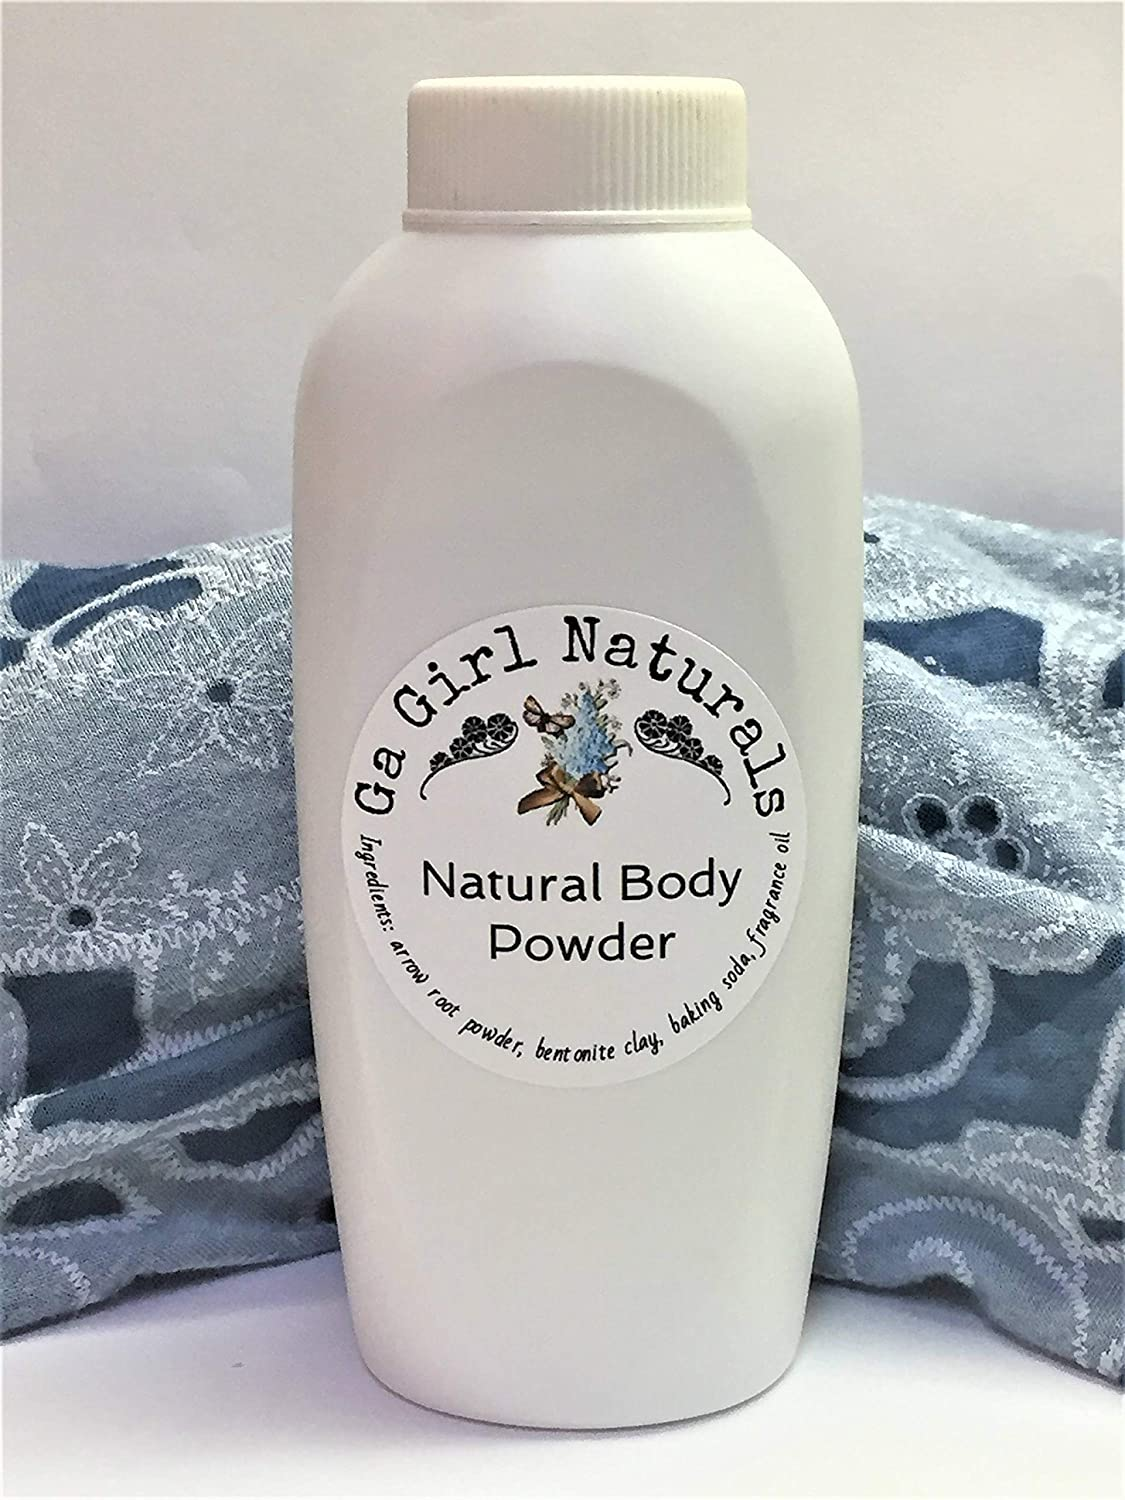 COCO Chanel Type Natural Deodorizing Body Powder organic body powder